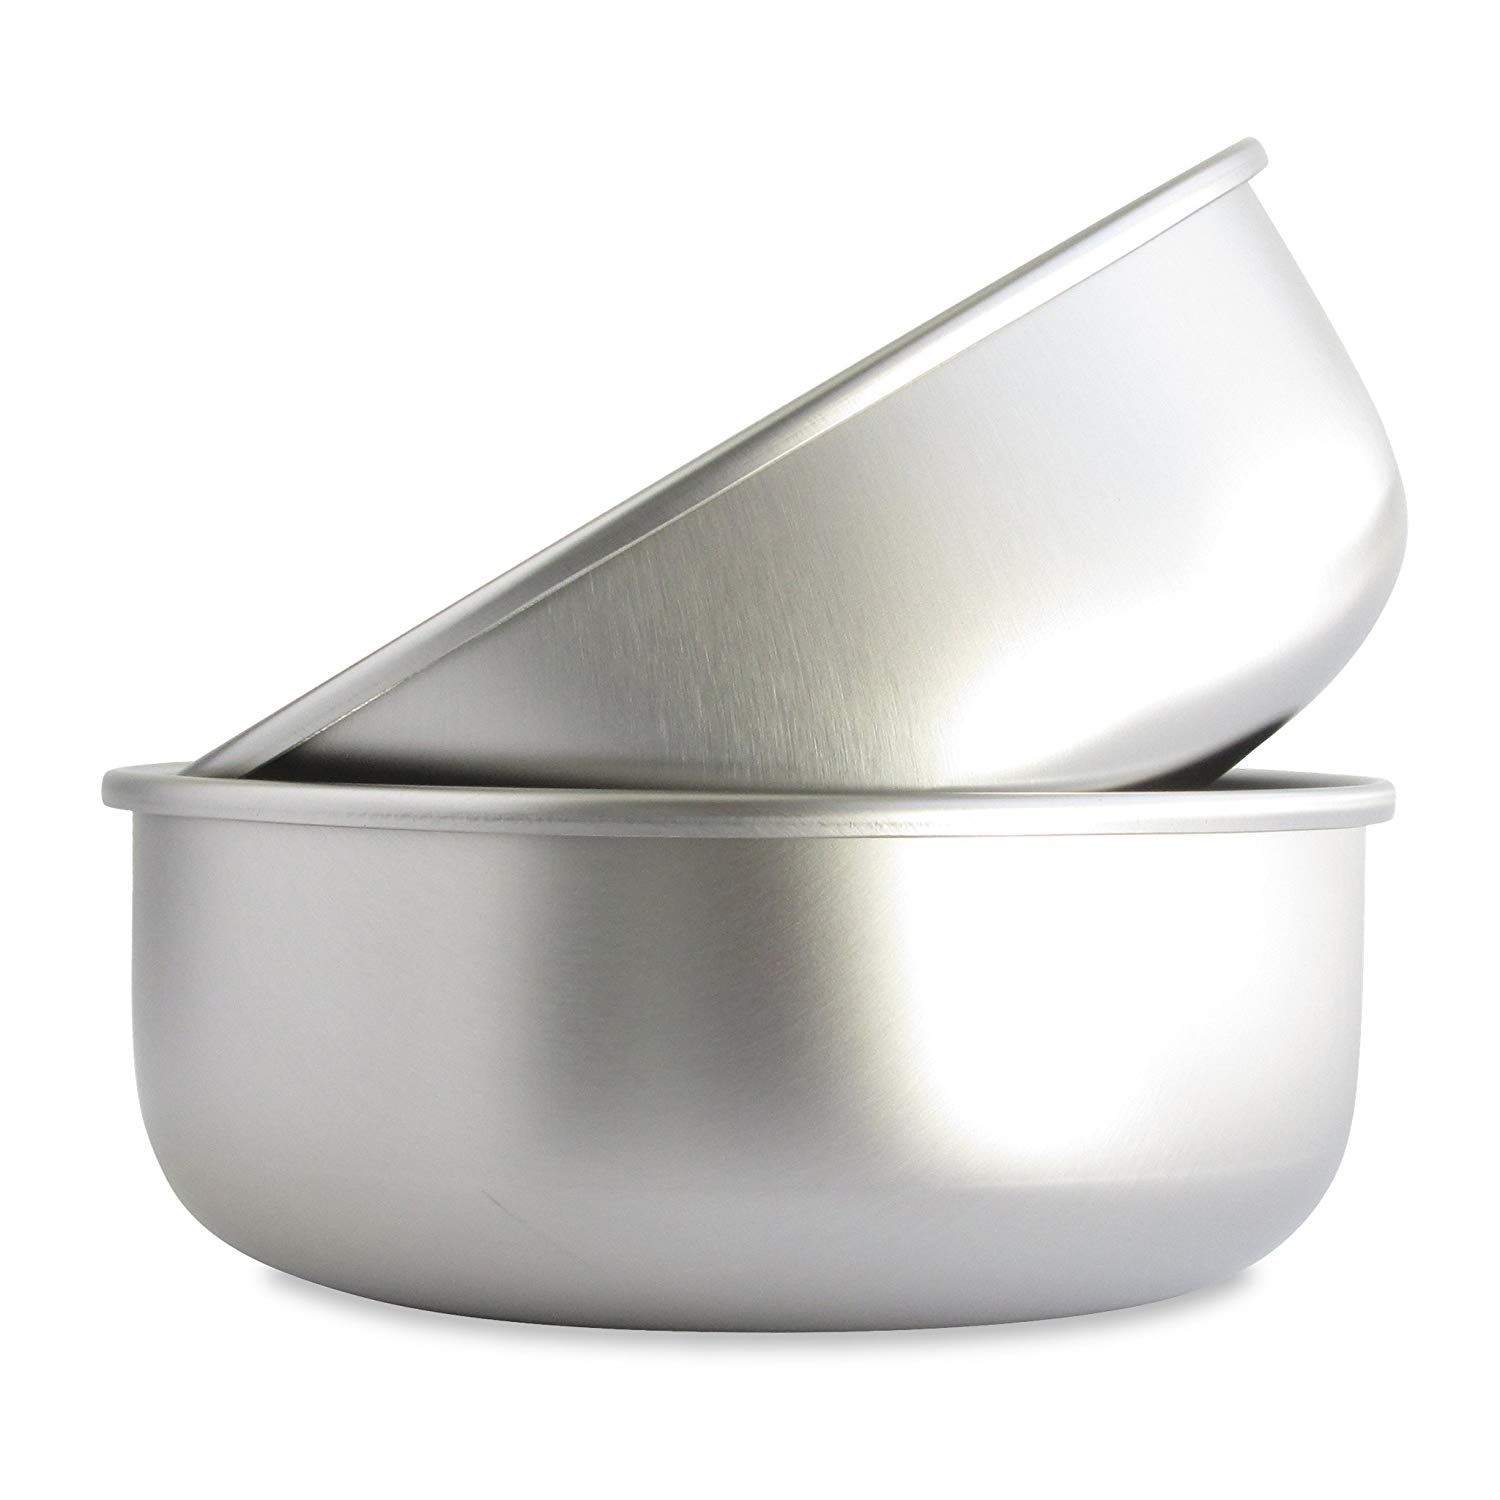 USA Stainless Steel Dog Bowl